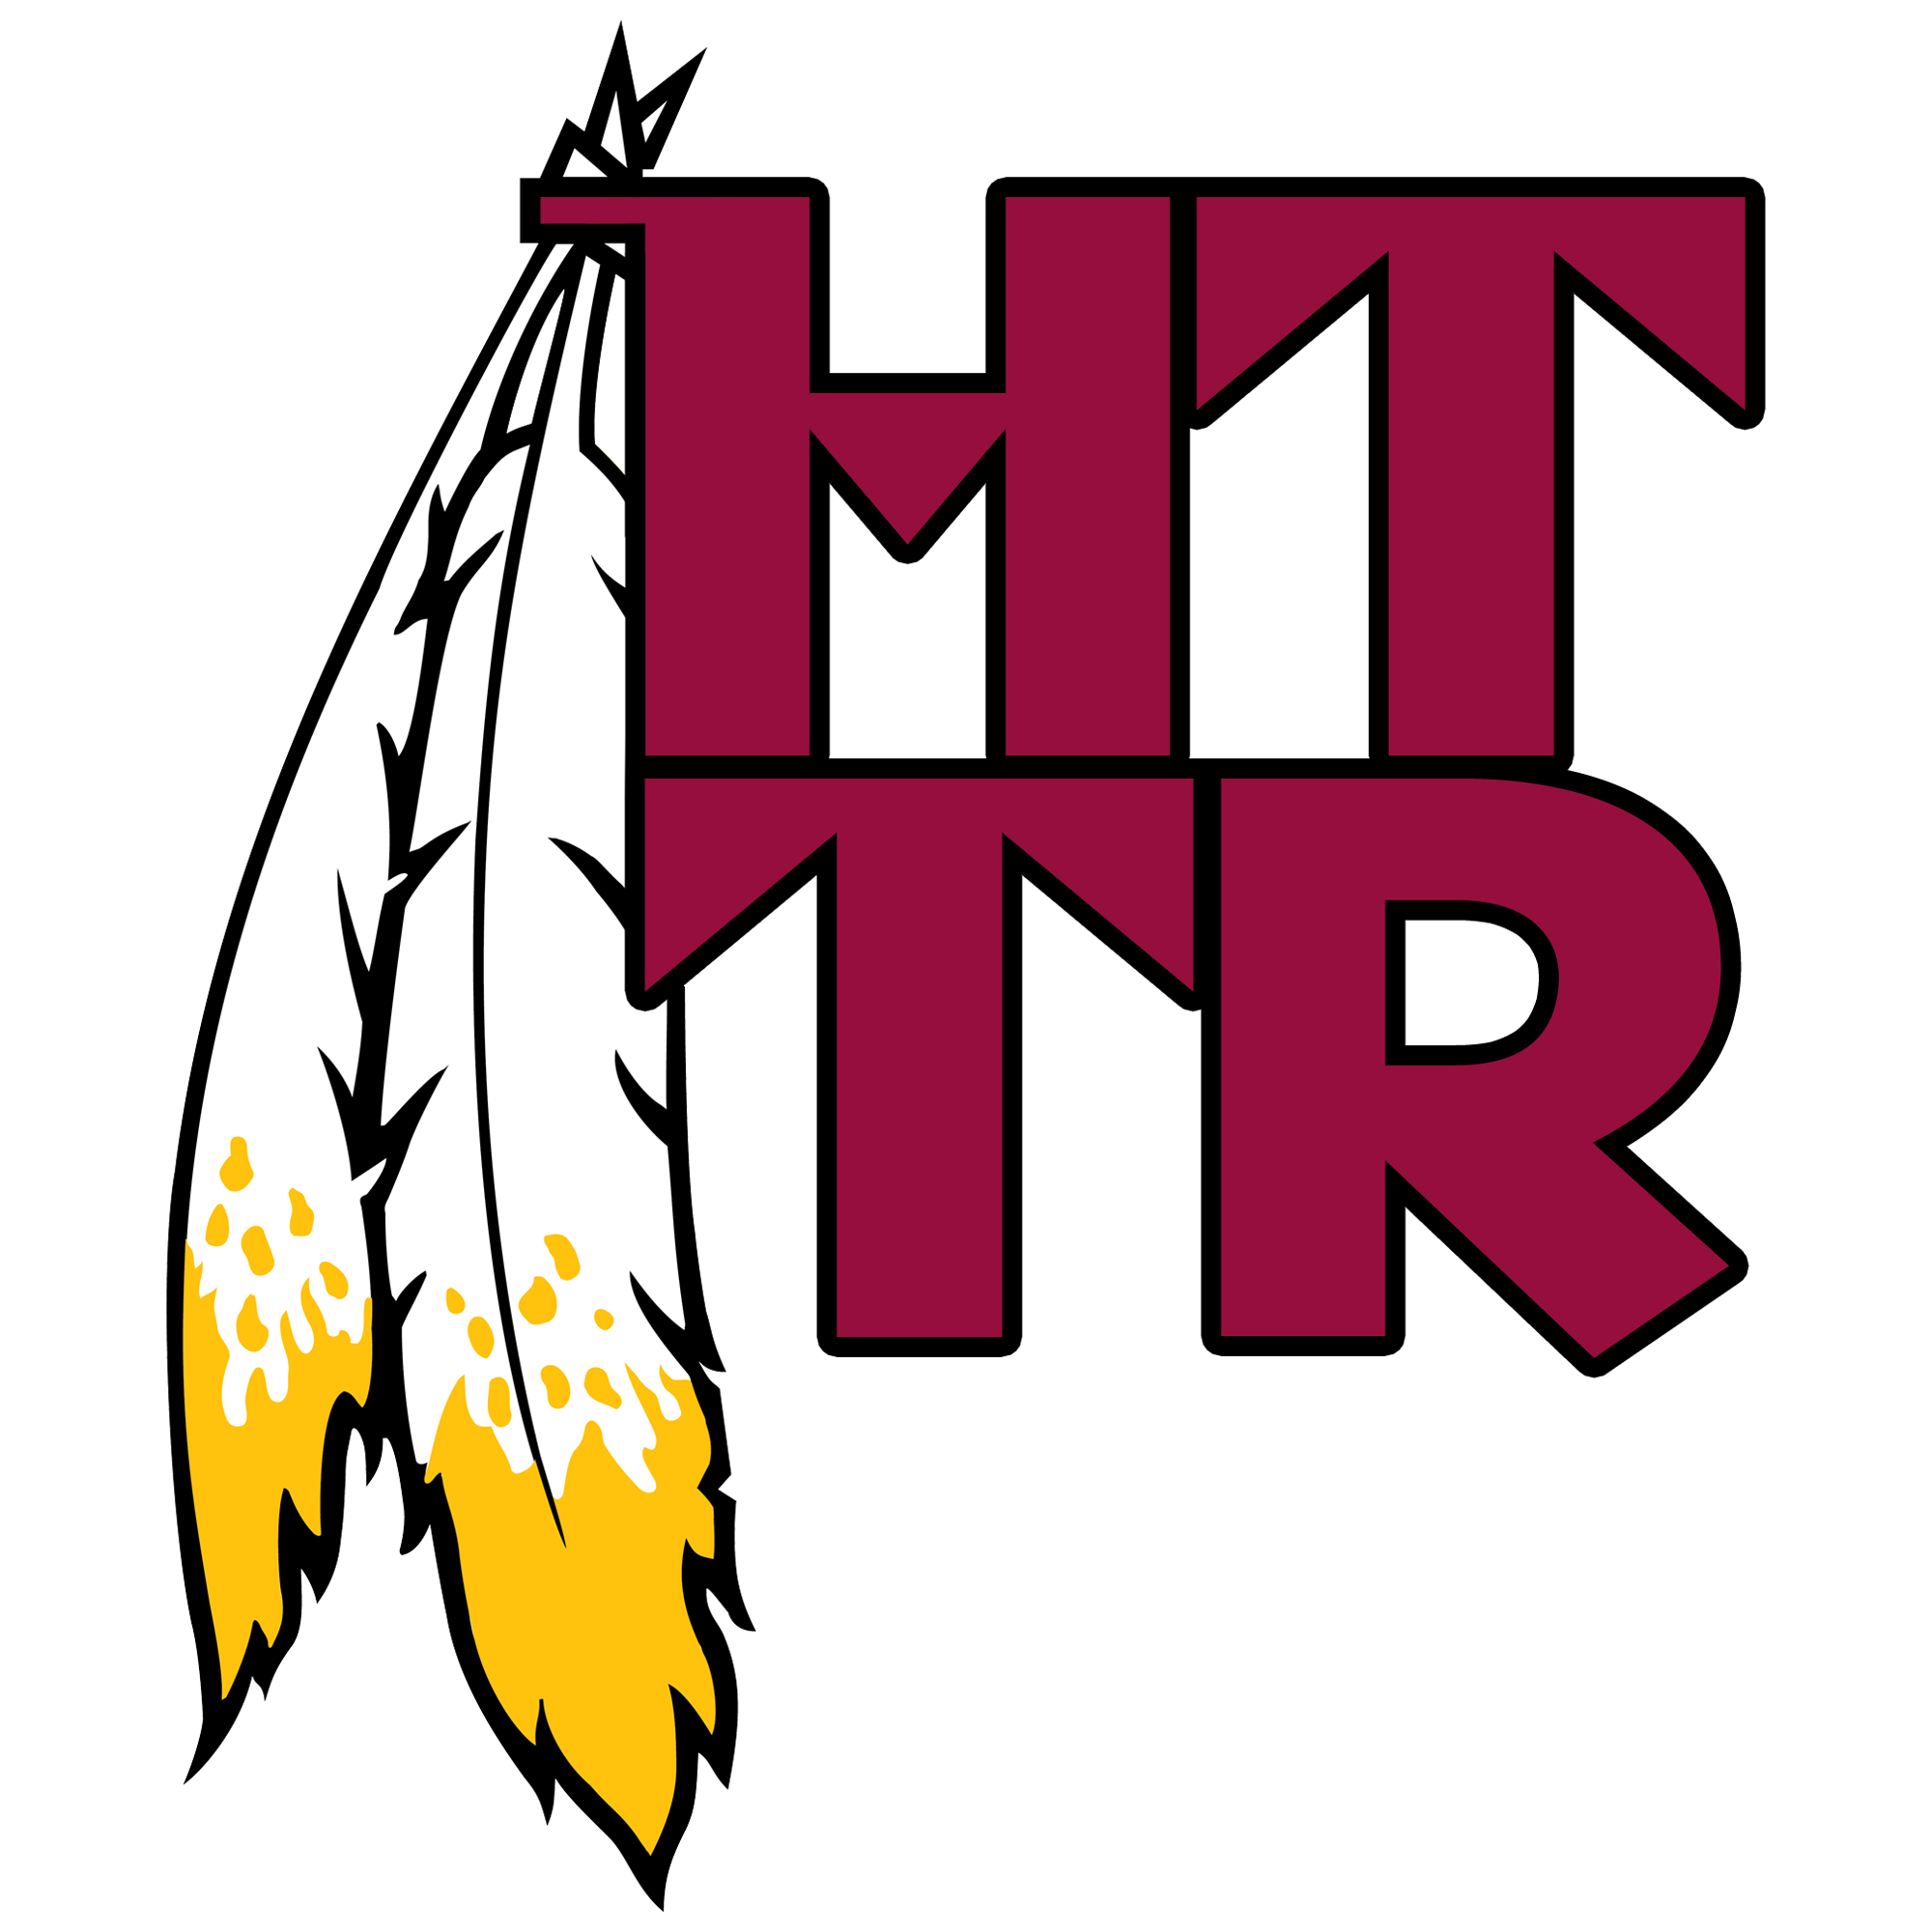 Redskins svg silhouette. Httr hail to the